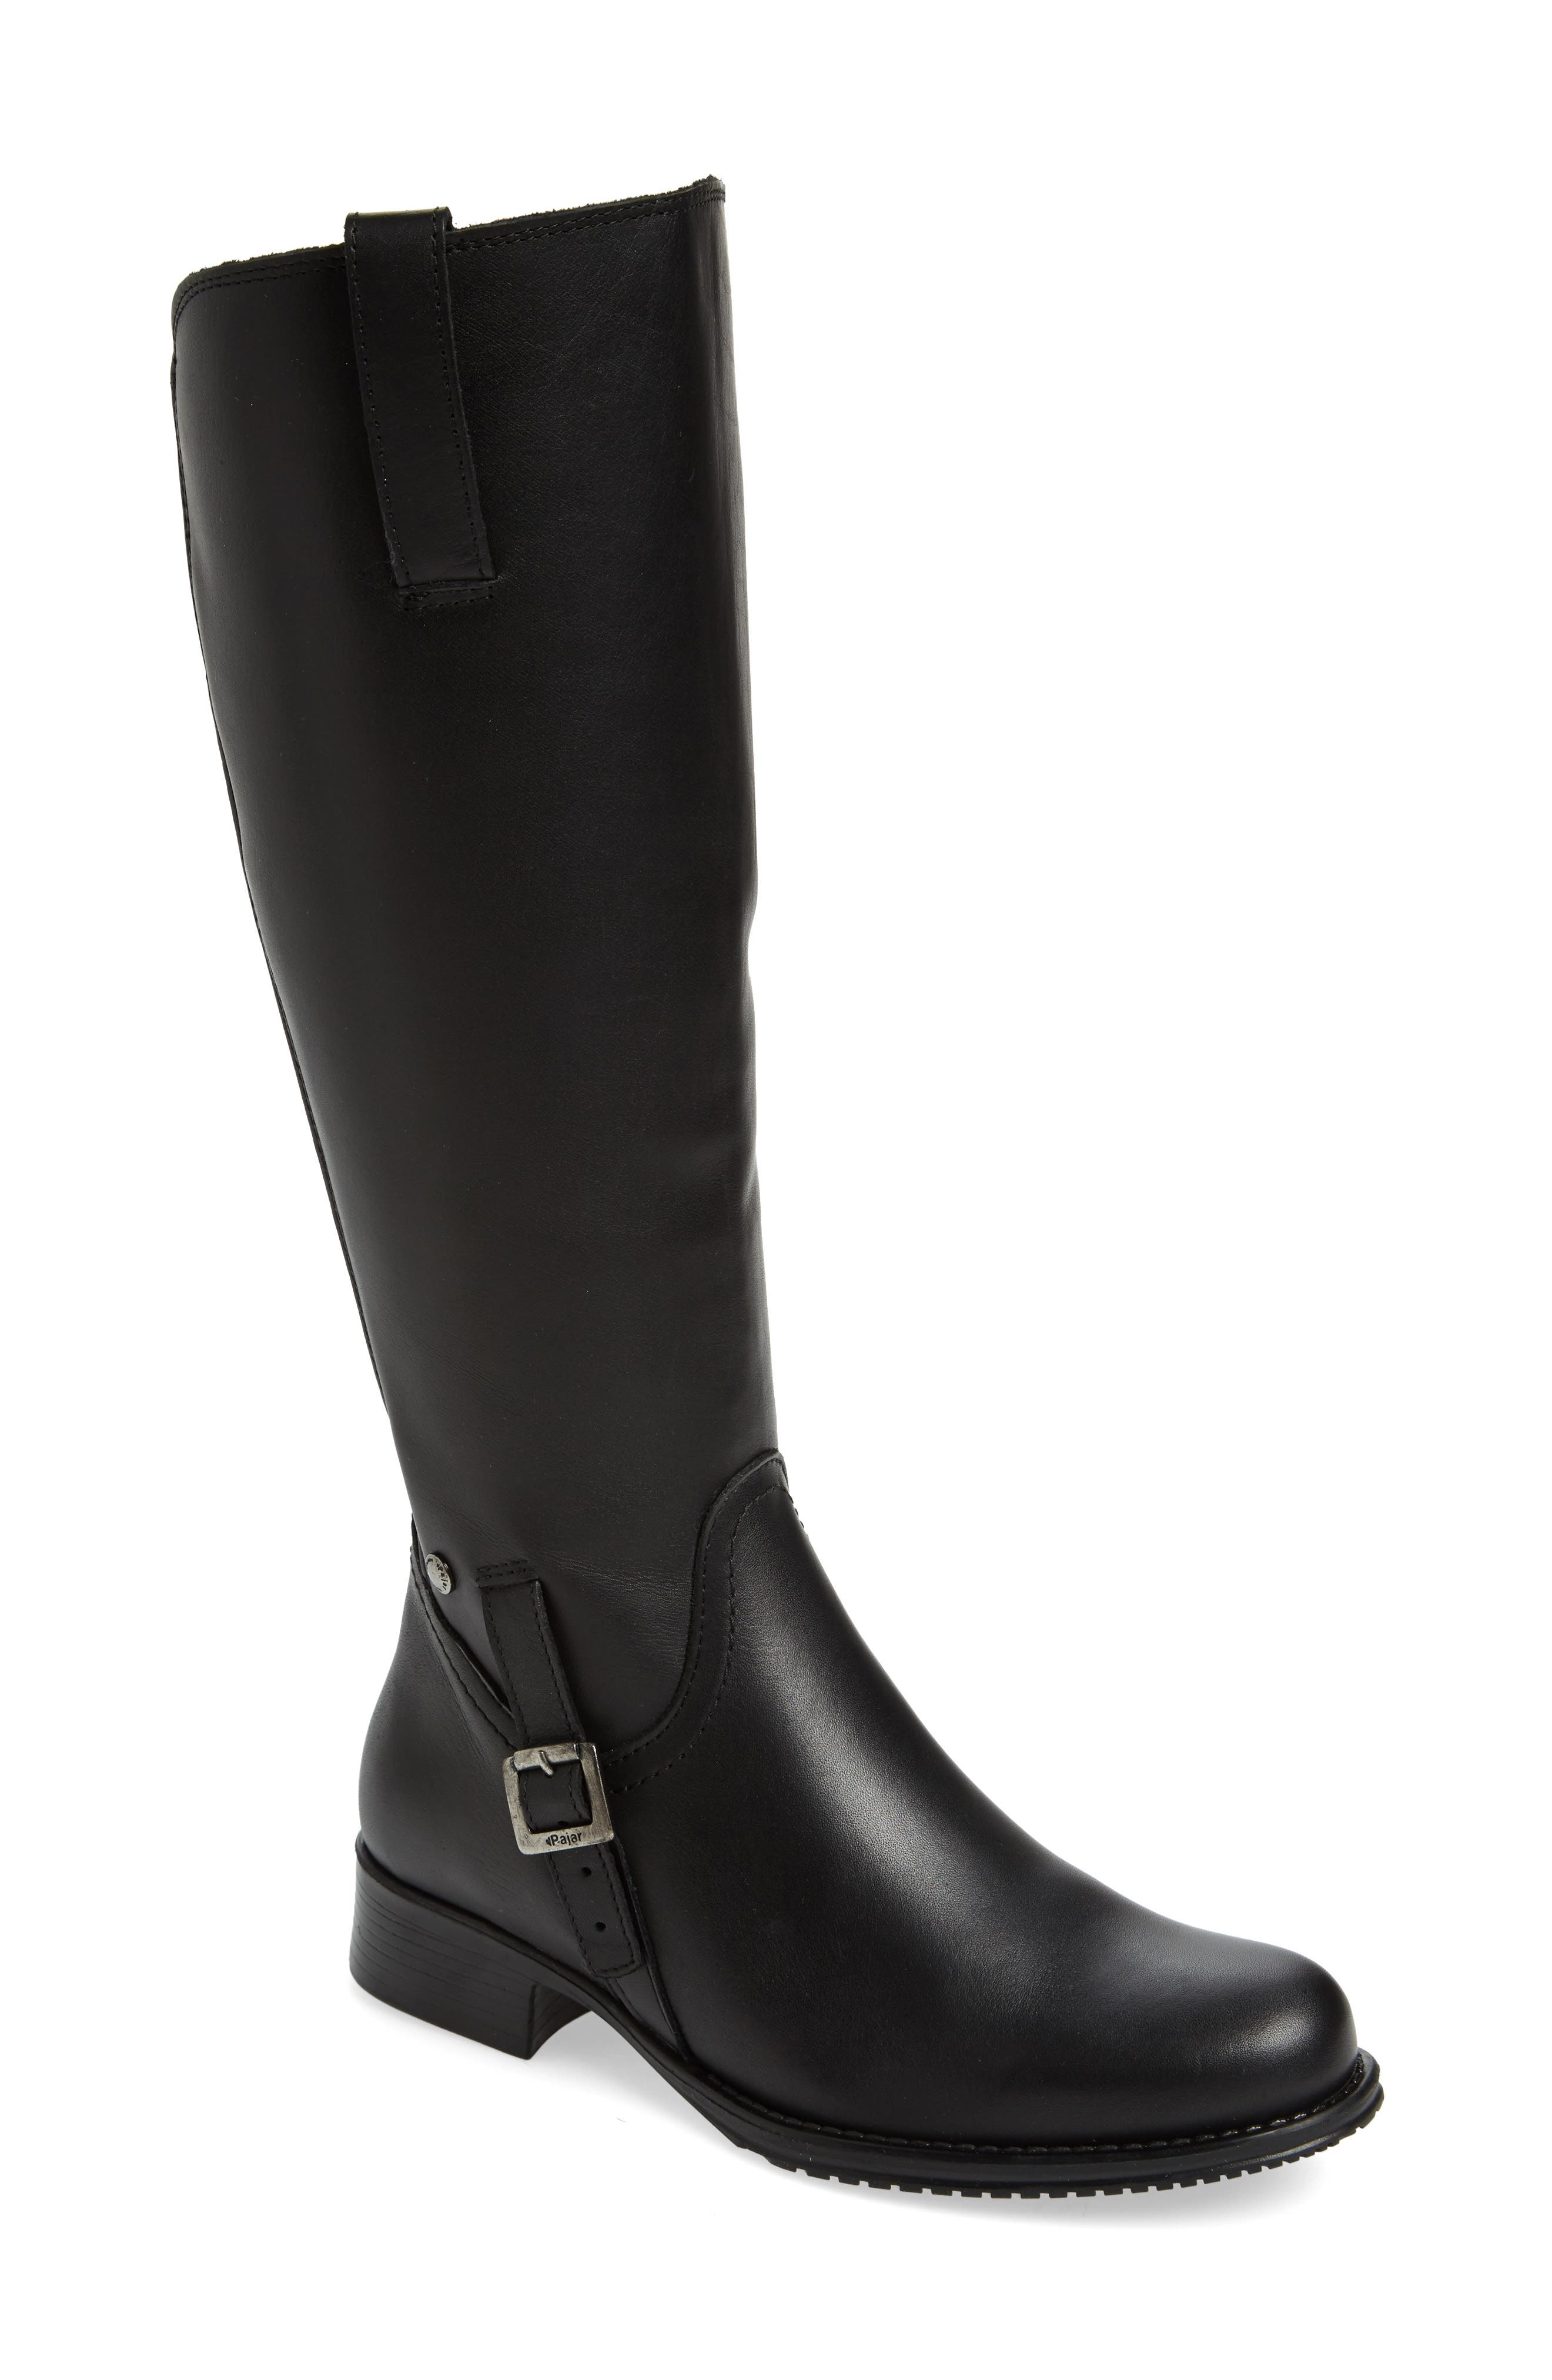 Dogueno Waterproof Boot,                             Main thumbnail 1, color,